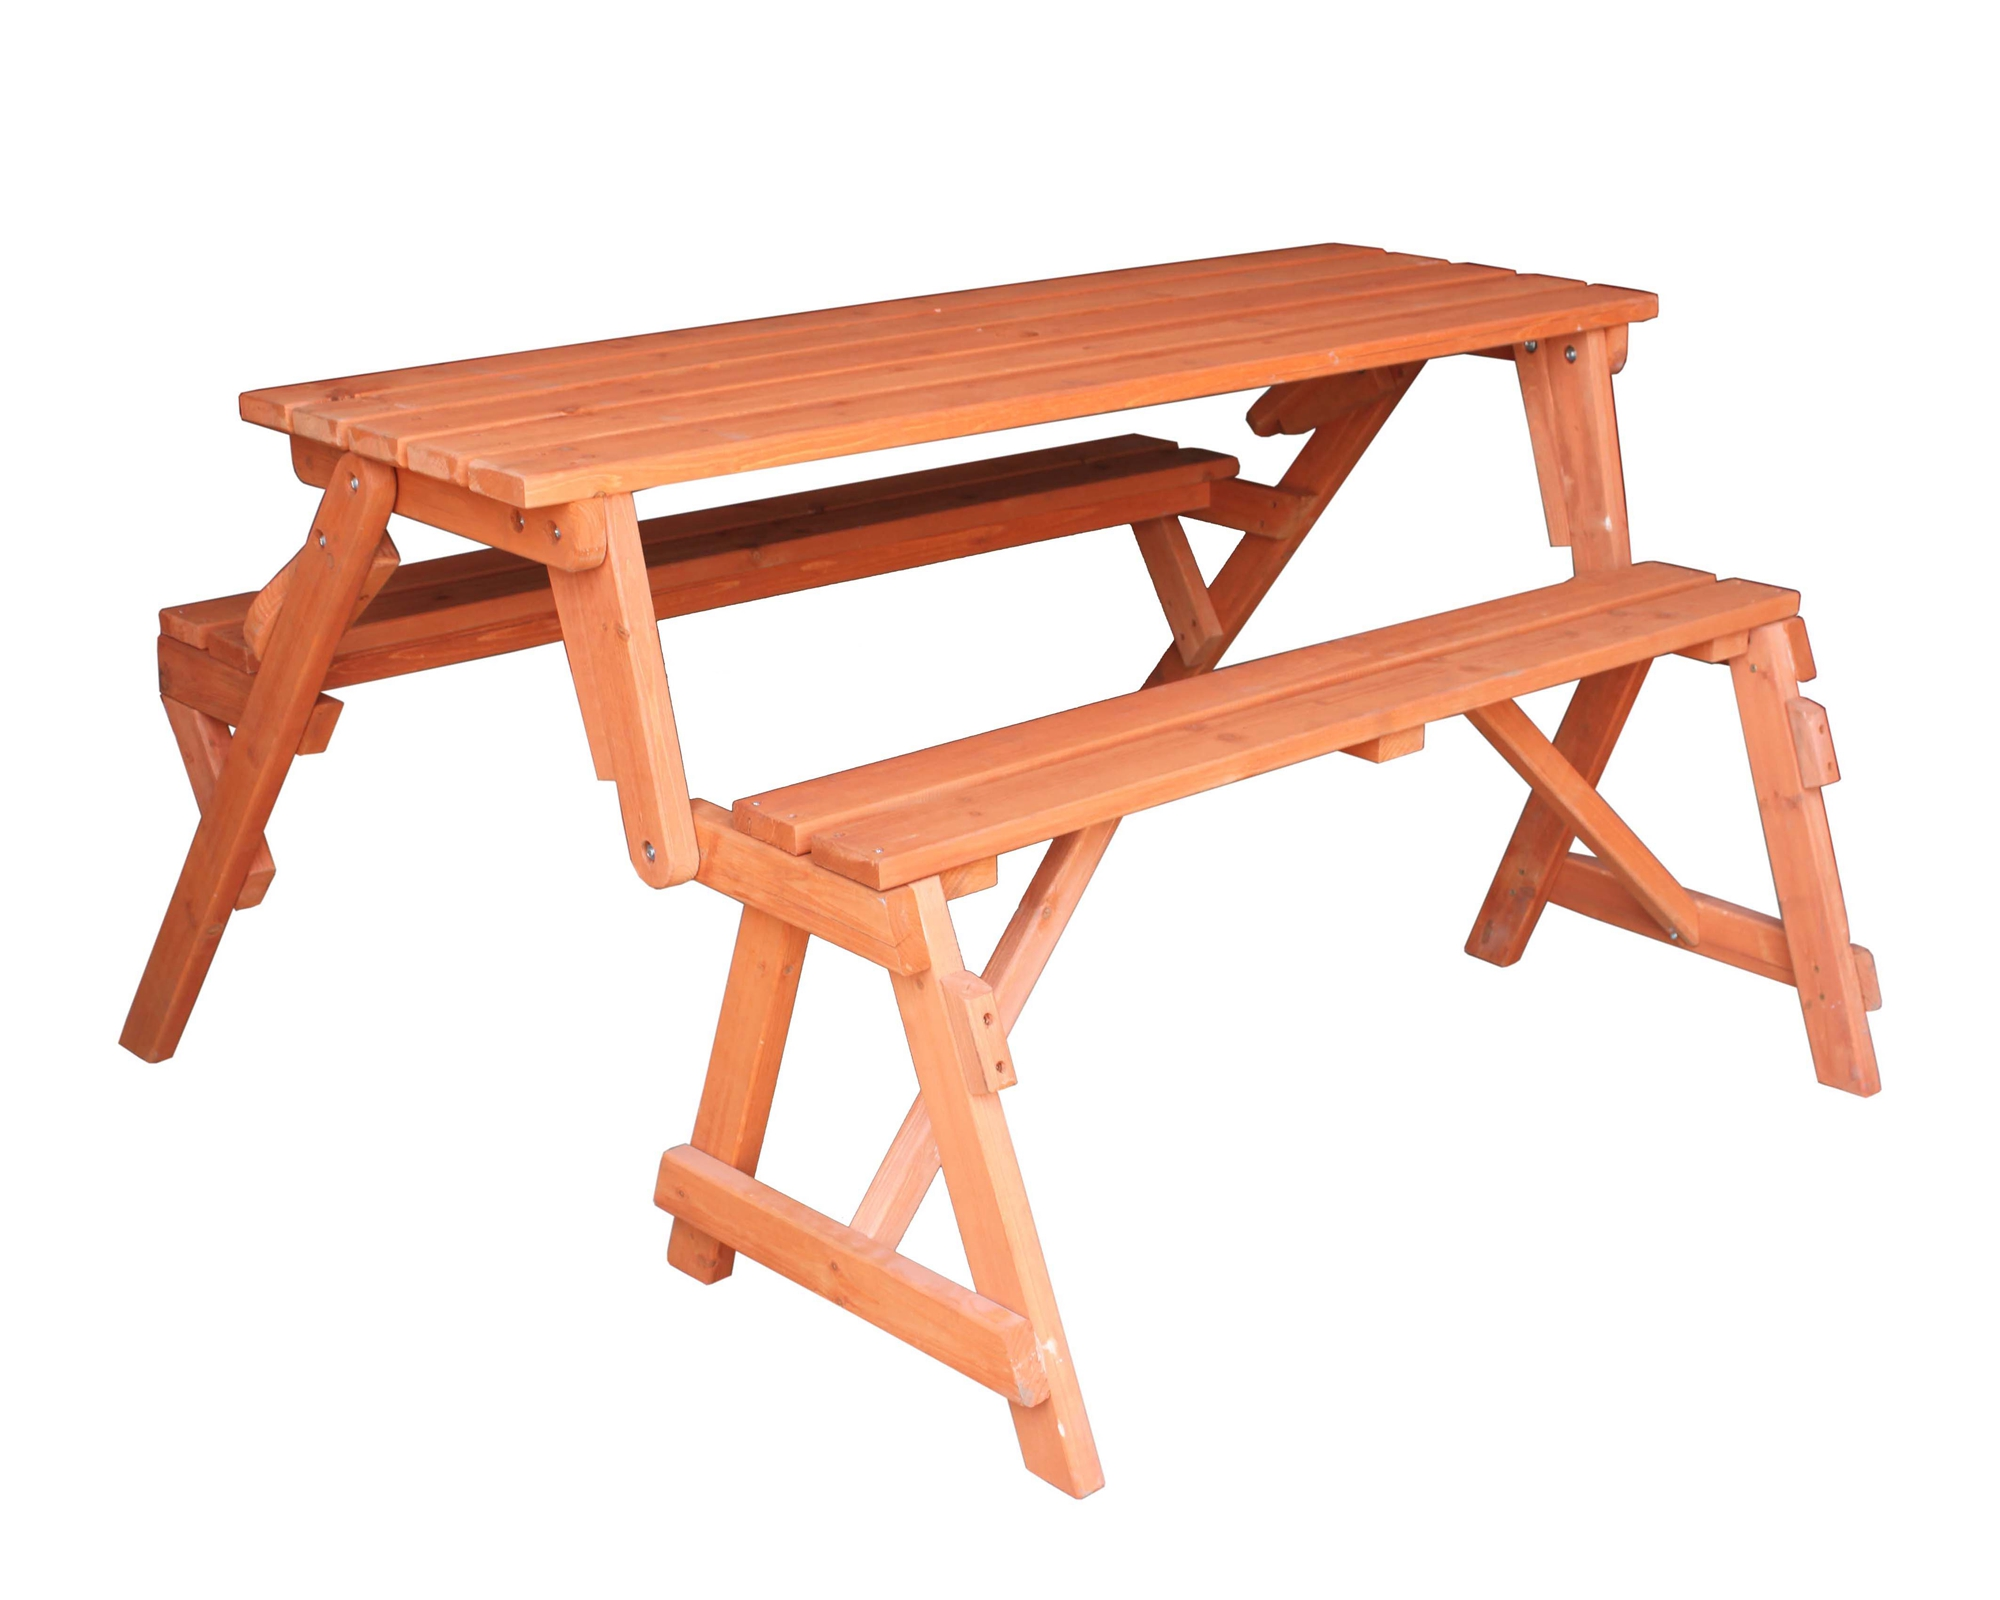 WOODEN FOLDING BENCH PICNIC GARDEN SEAT TABLE 2 in 1 OUTDOOR SEATS